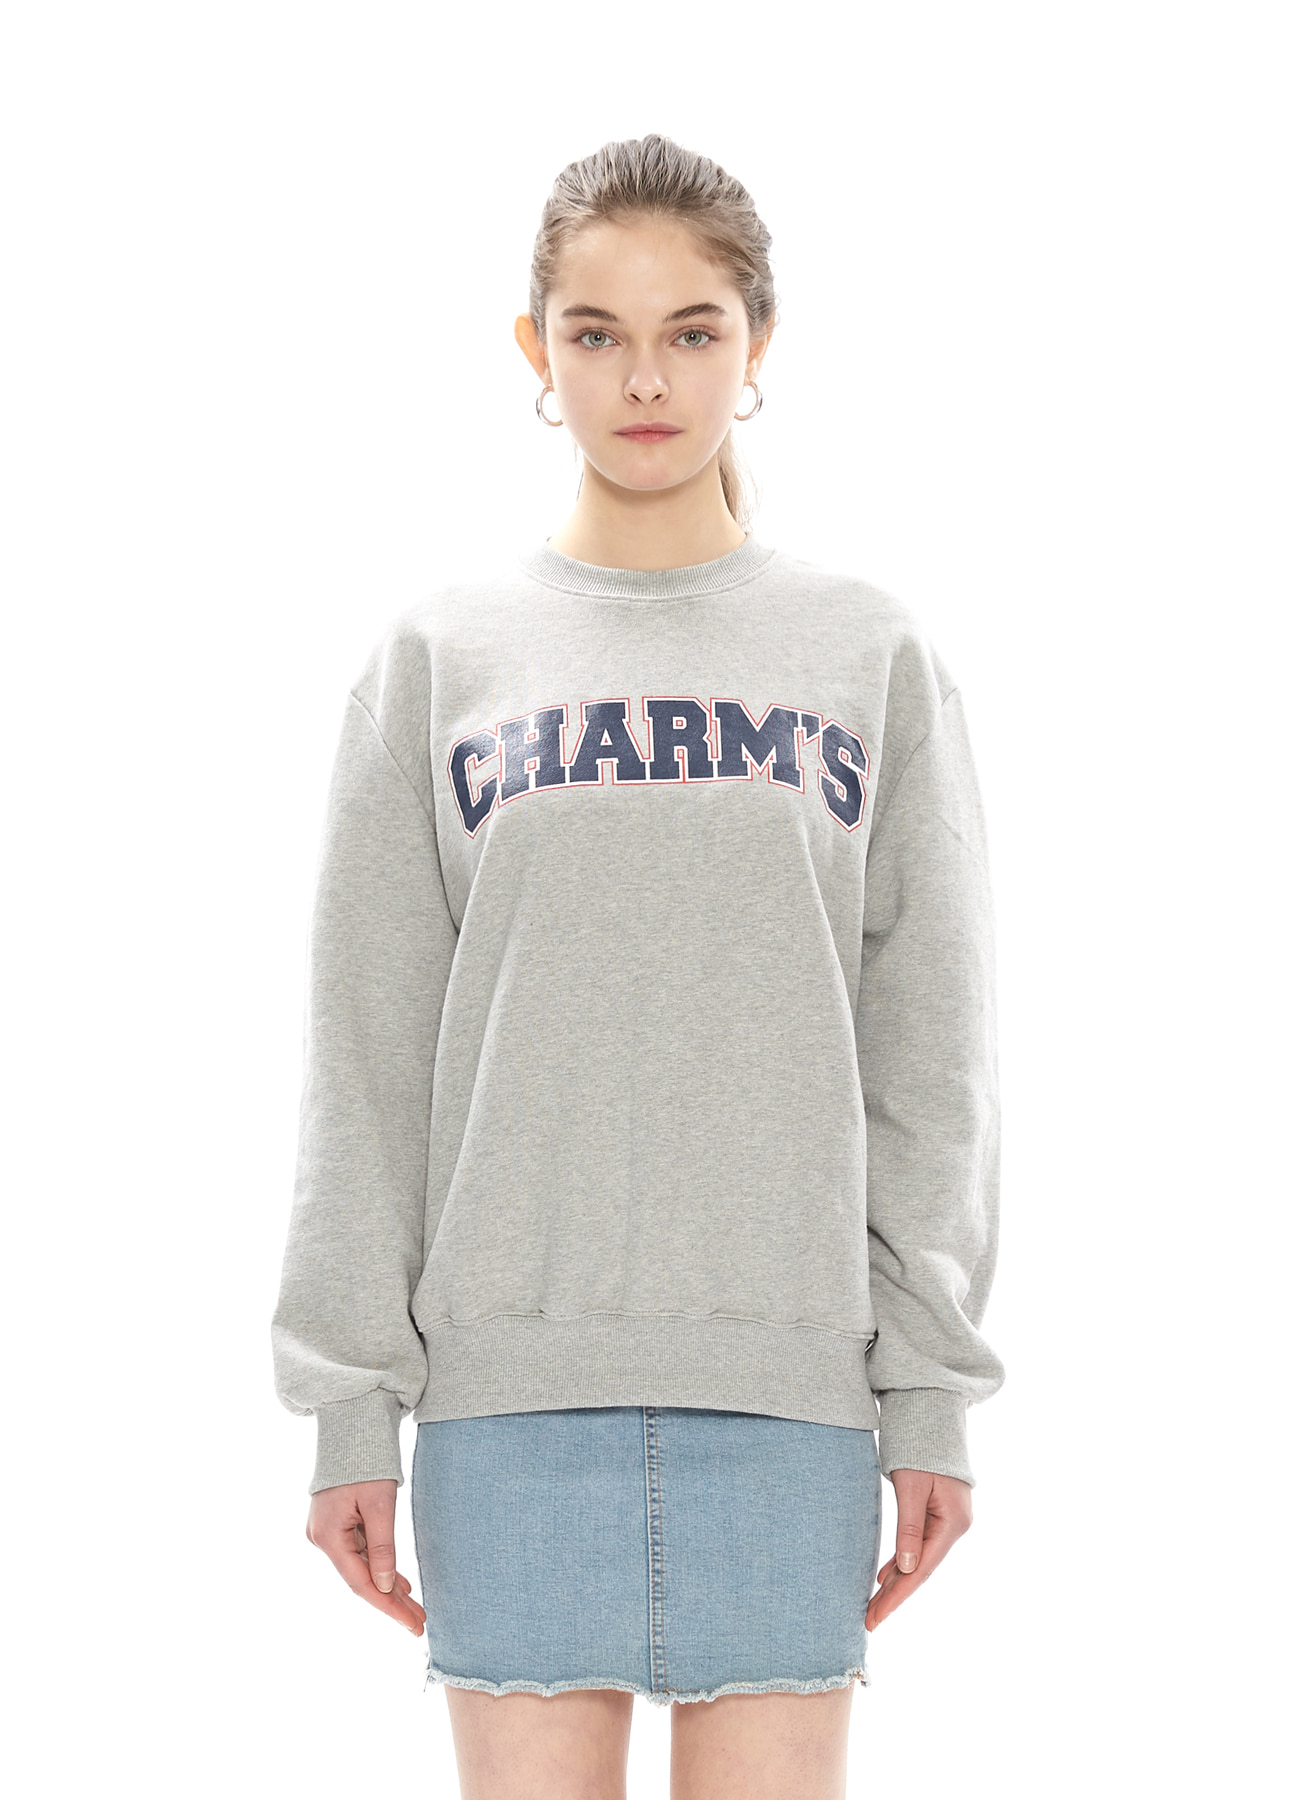 CHARMS BIG LOGO SWEATSHIRTS_GY